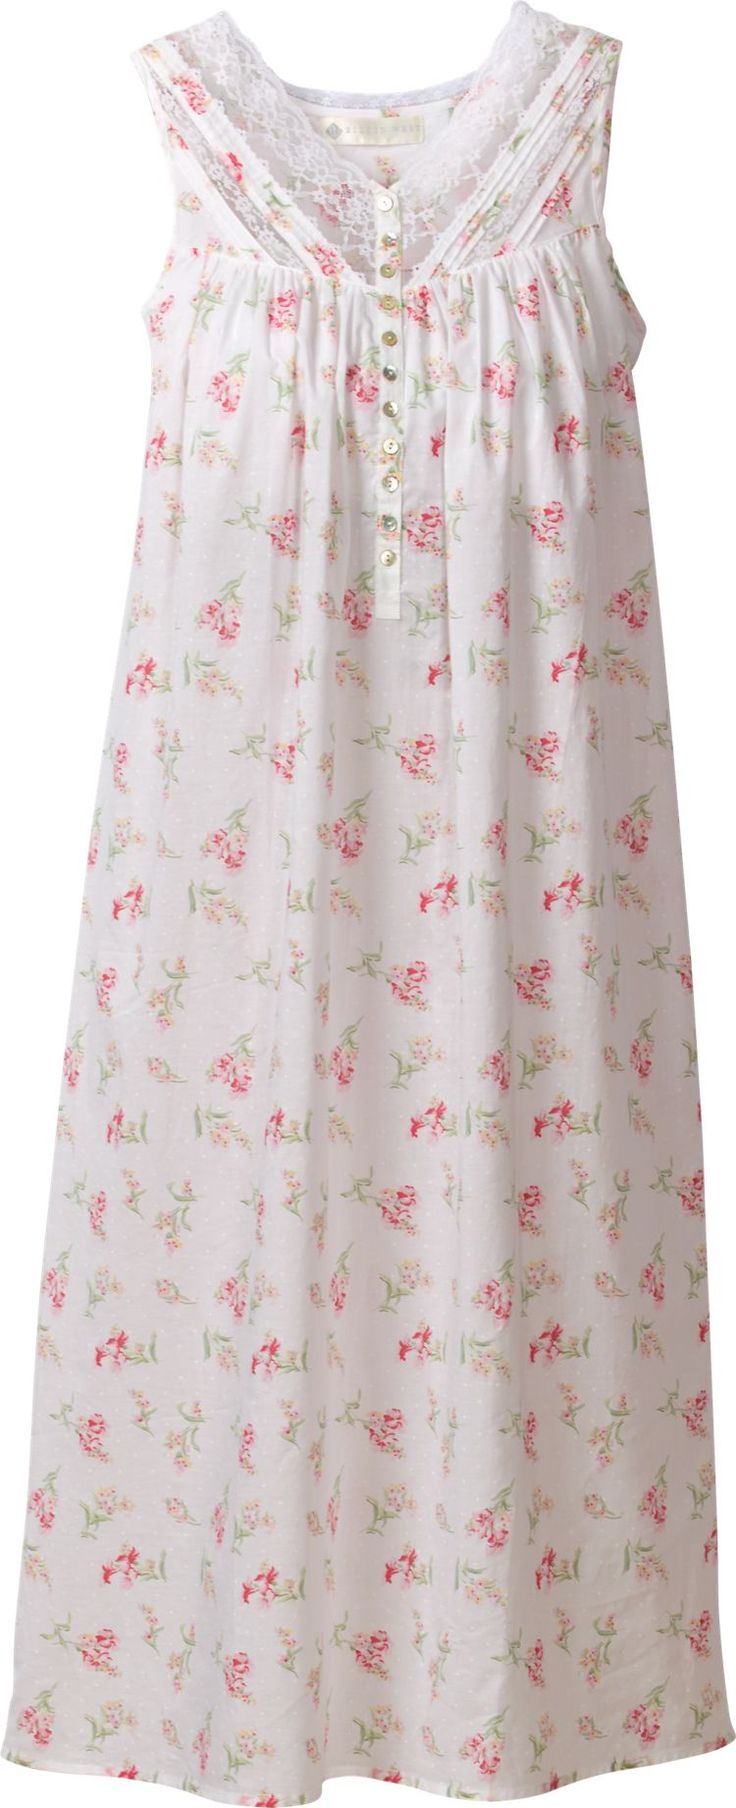 Eileen West Morning Meadow Nightgown: Details, details, and more details…that's the recipe designer Eileen West follows to make creations that have our customers asking for seconds.